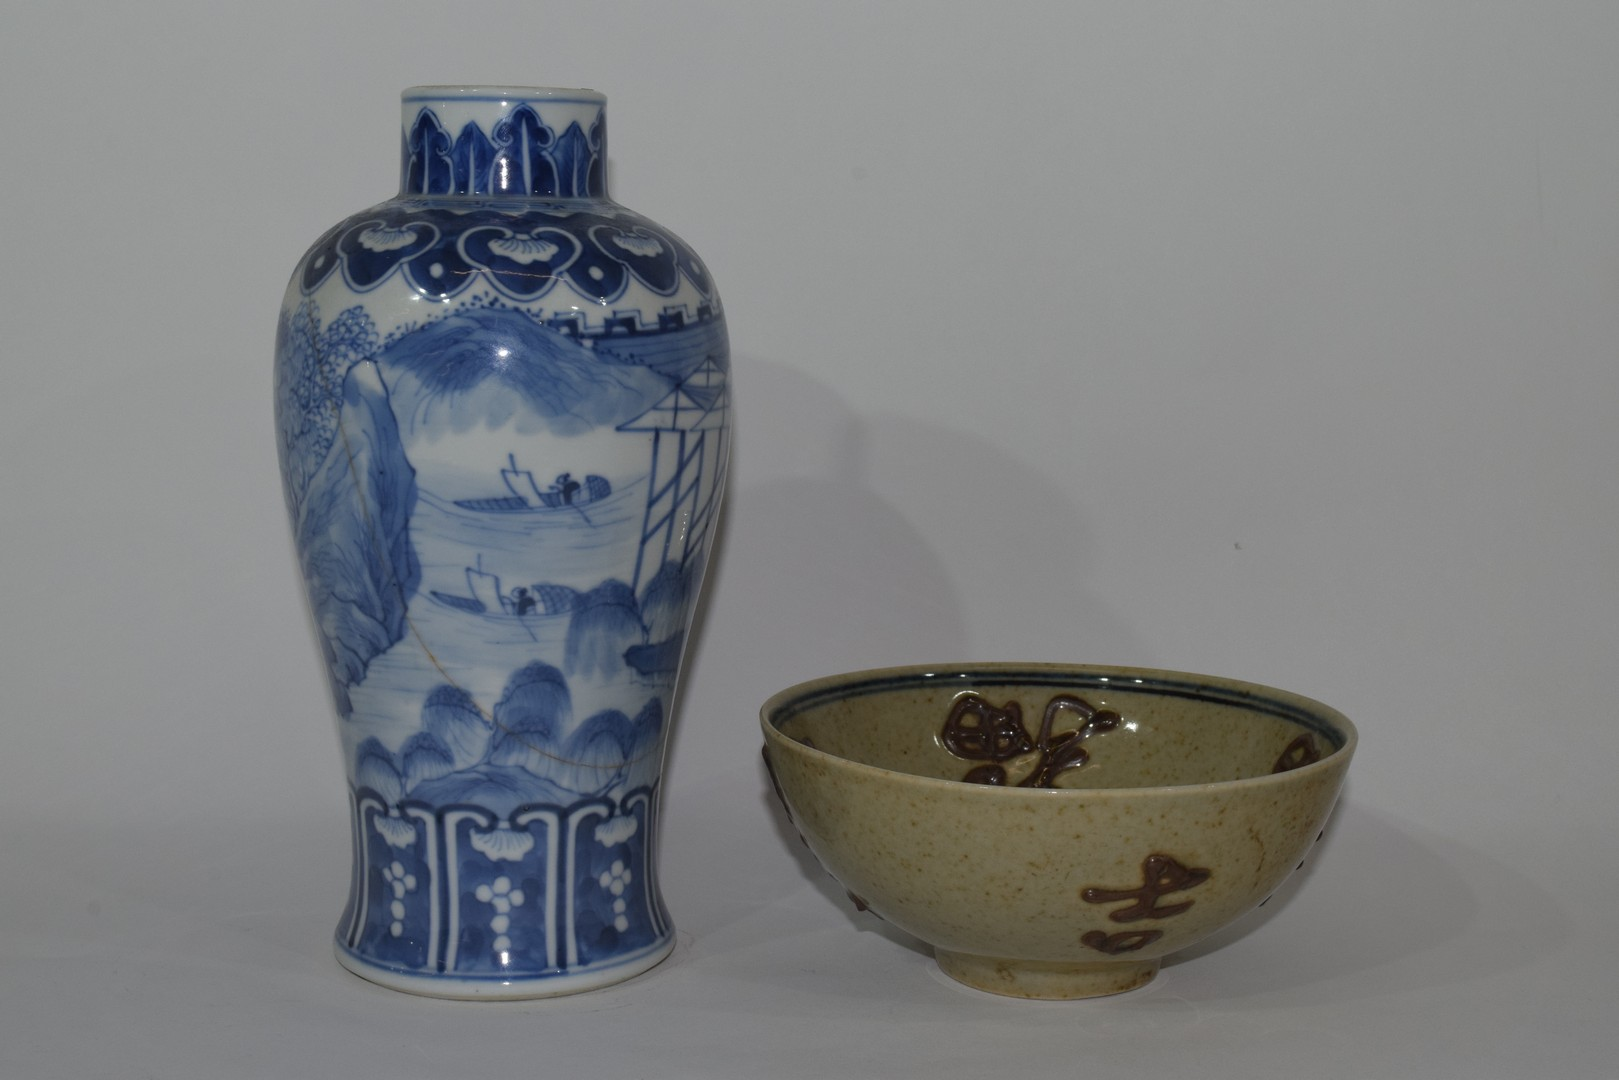 19th century Chinese porcelain bowl - Image 11 of 17